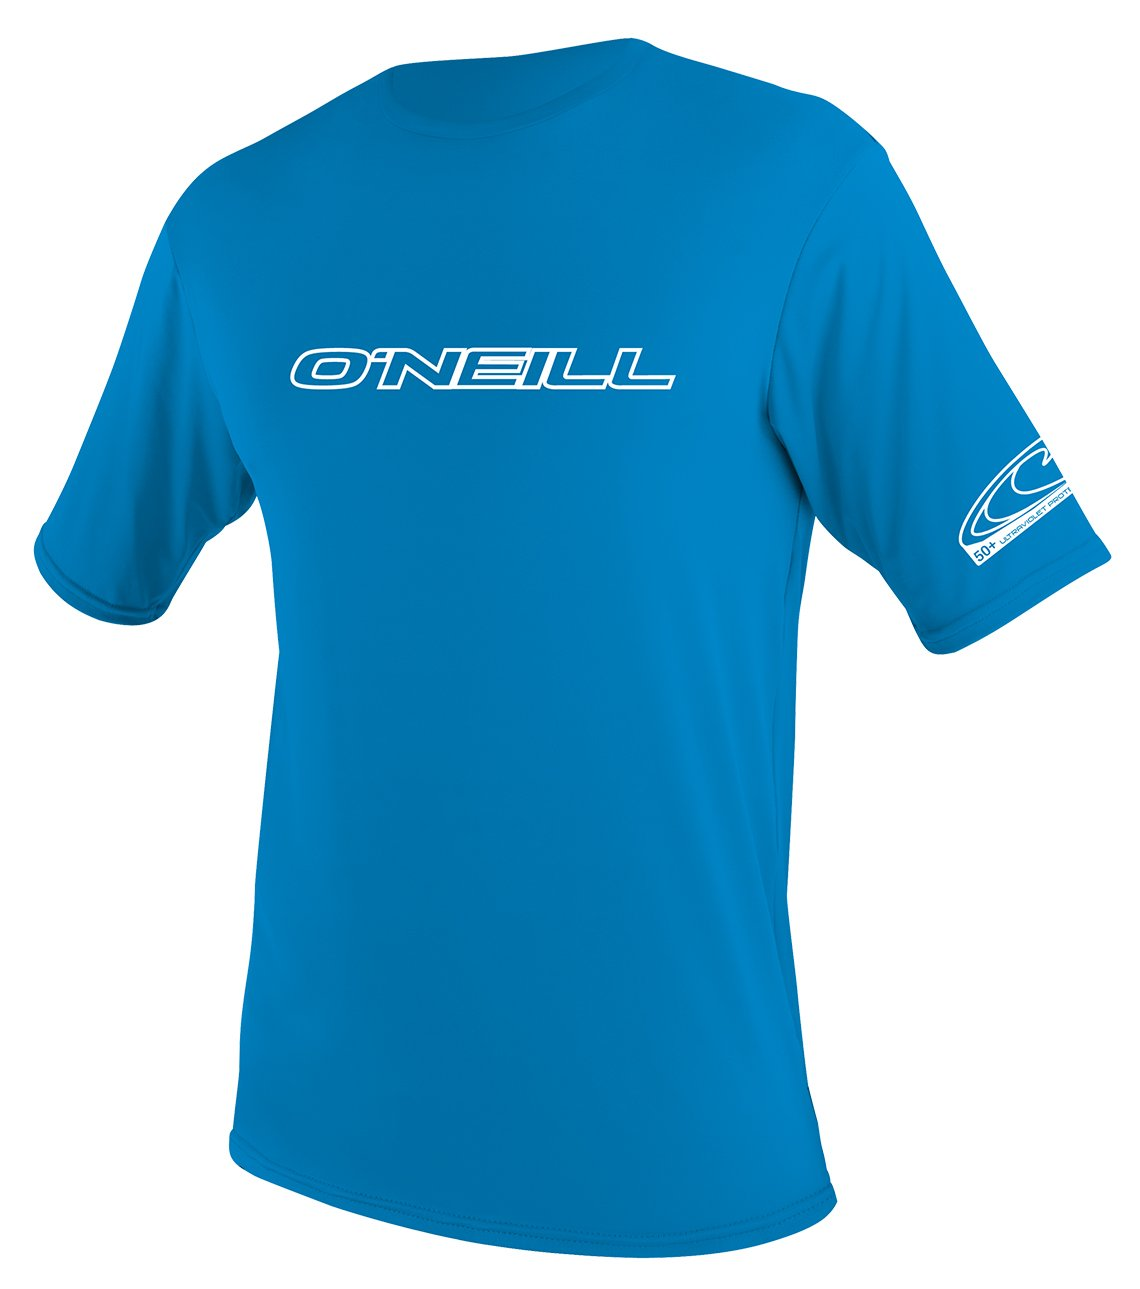 O'Neill Wetsuits Wetsuits UV Sun Protection Youth Basic Skins Short Sleeve Tee Sun Shirt Rash Guard, Bright Blue, 14 by O'Neill Wetsuits